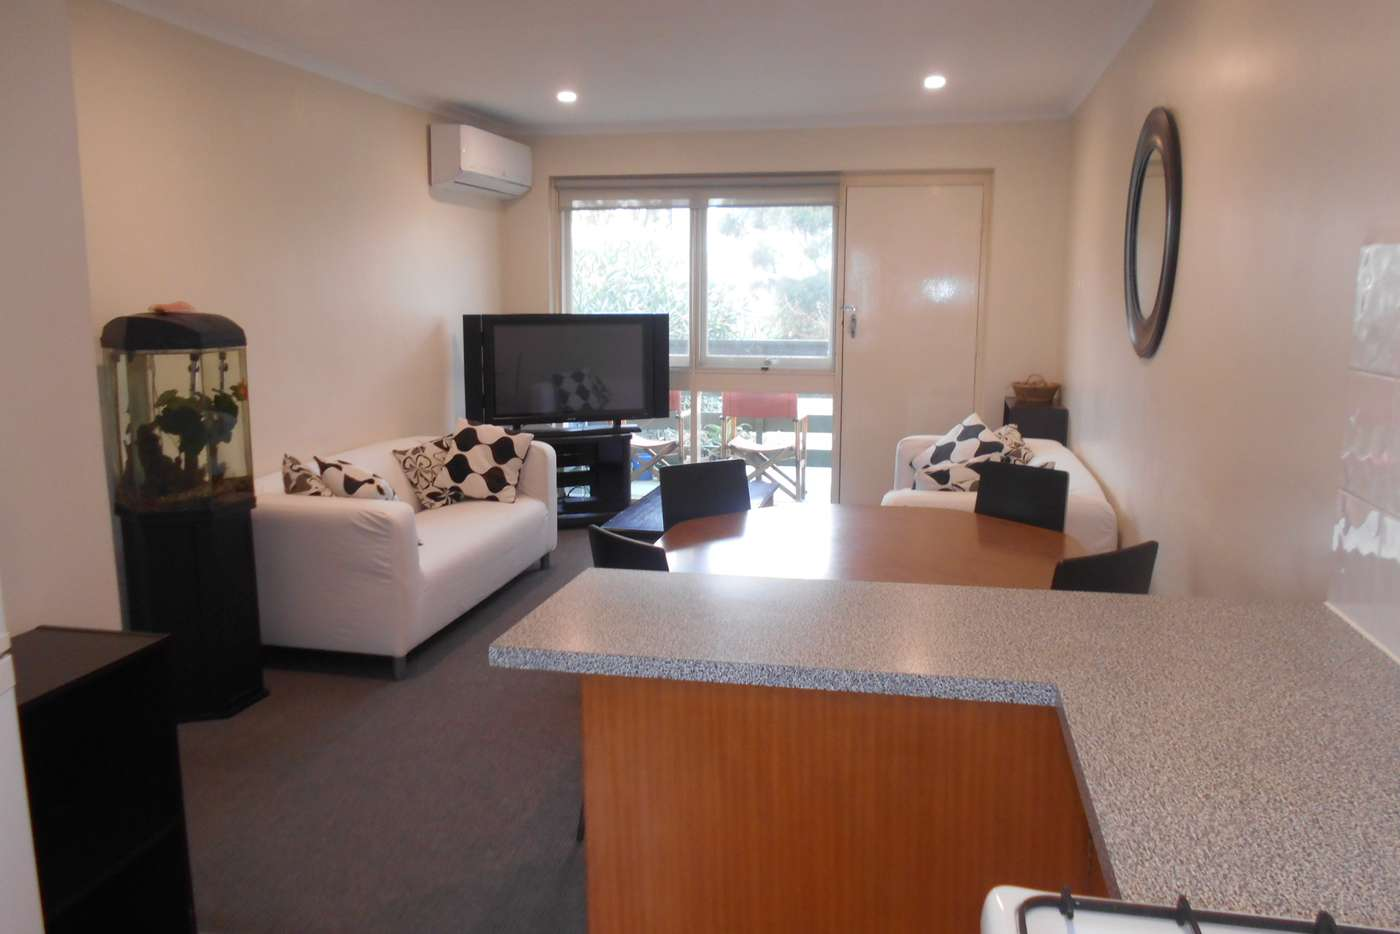 Main view of Homely unit listing, 6 / 123 Tapleys Hill Rd, Glenelg North SA 5045